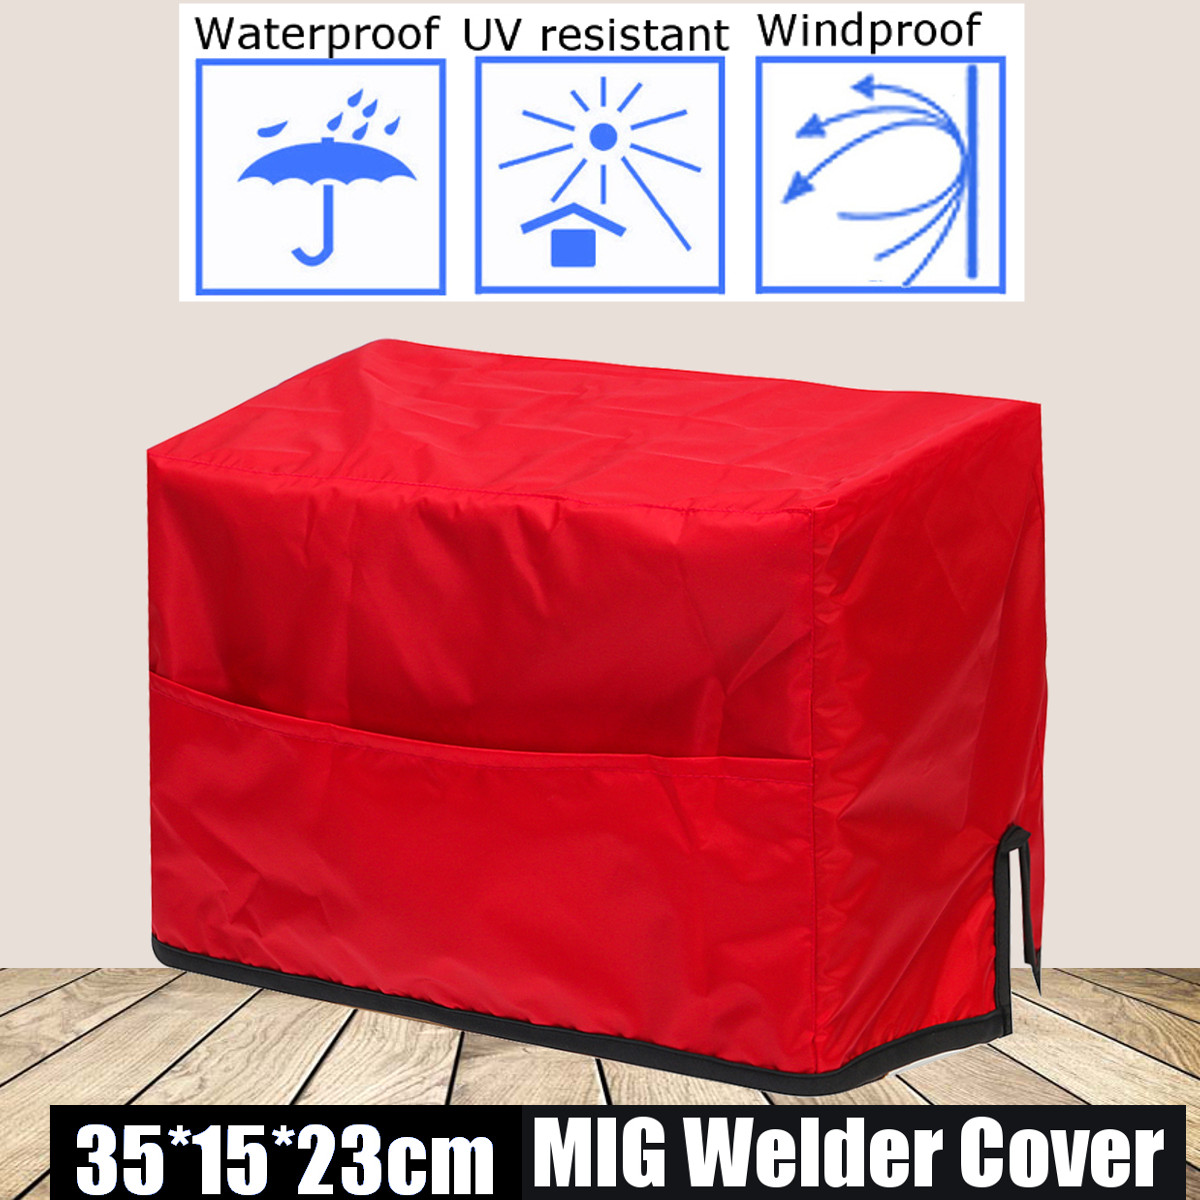 Welder Welding Machine Cover Dustproof Waterproof Protector Cloth For Lincoln MIG Welding Machine 13.8x5.1x9 Inch